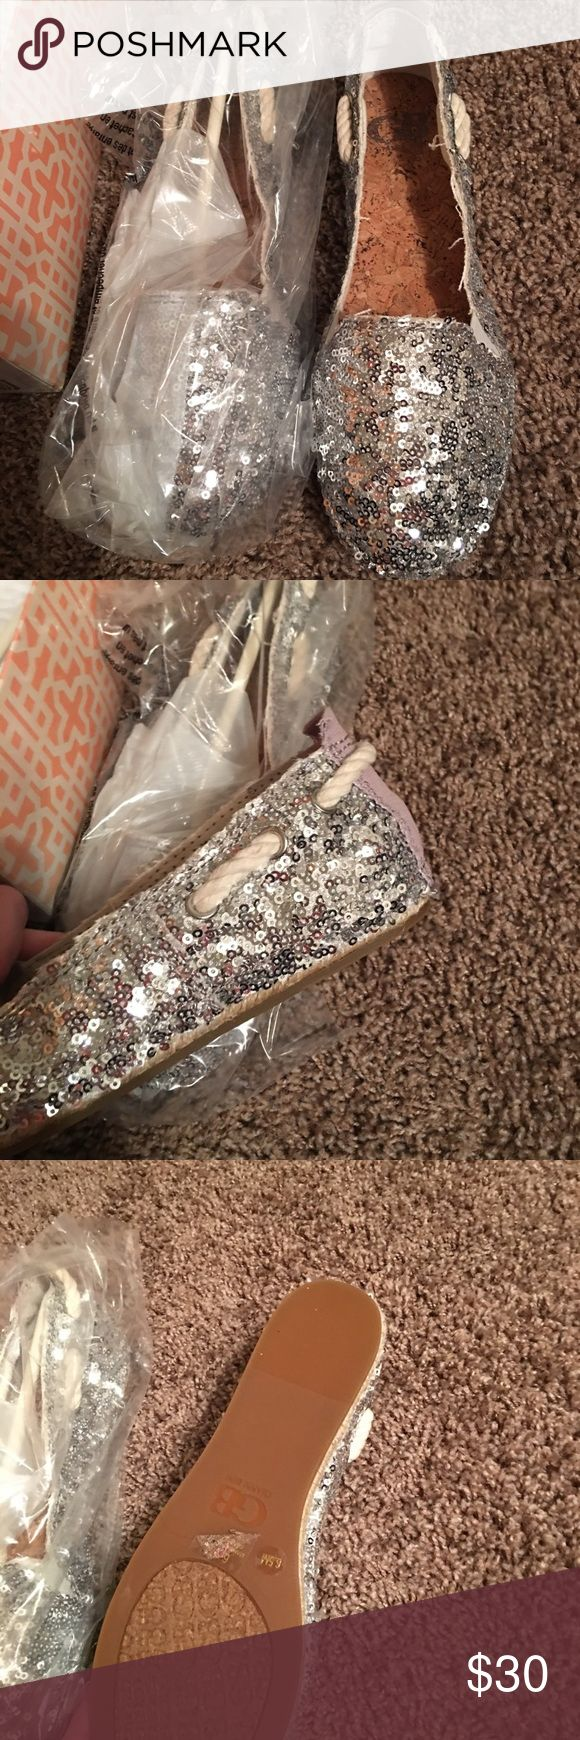 Gianni Bini Sequin Deck Shoes Gianni Bini Sequin Deck Shoes—New Never Worn Gianni Bini Shoes Flats & Loafers